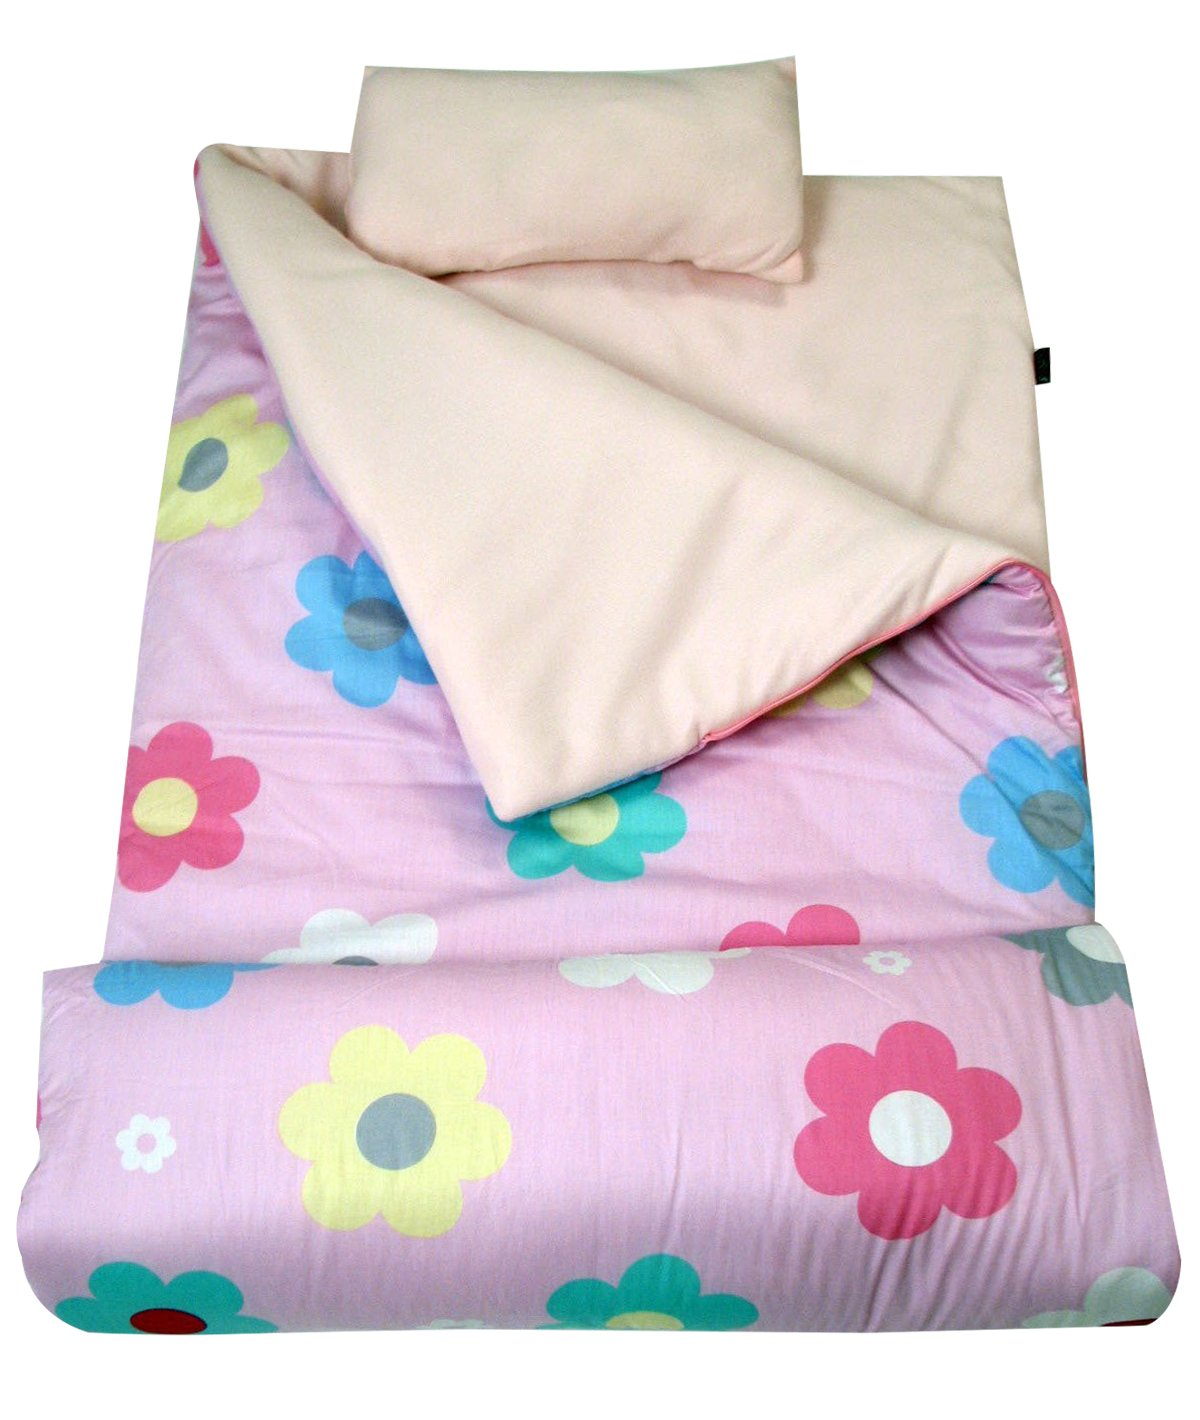 SoHo kids My Lovely Flowers children sleeping slumber bag with pillow and carrying case lightweight foldable for sleep over